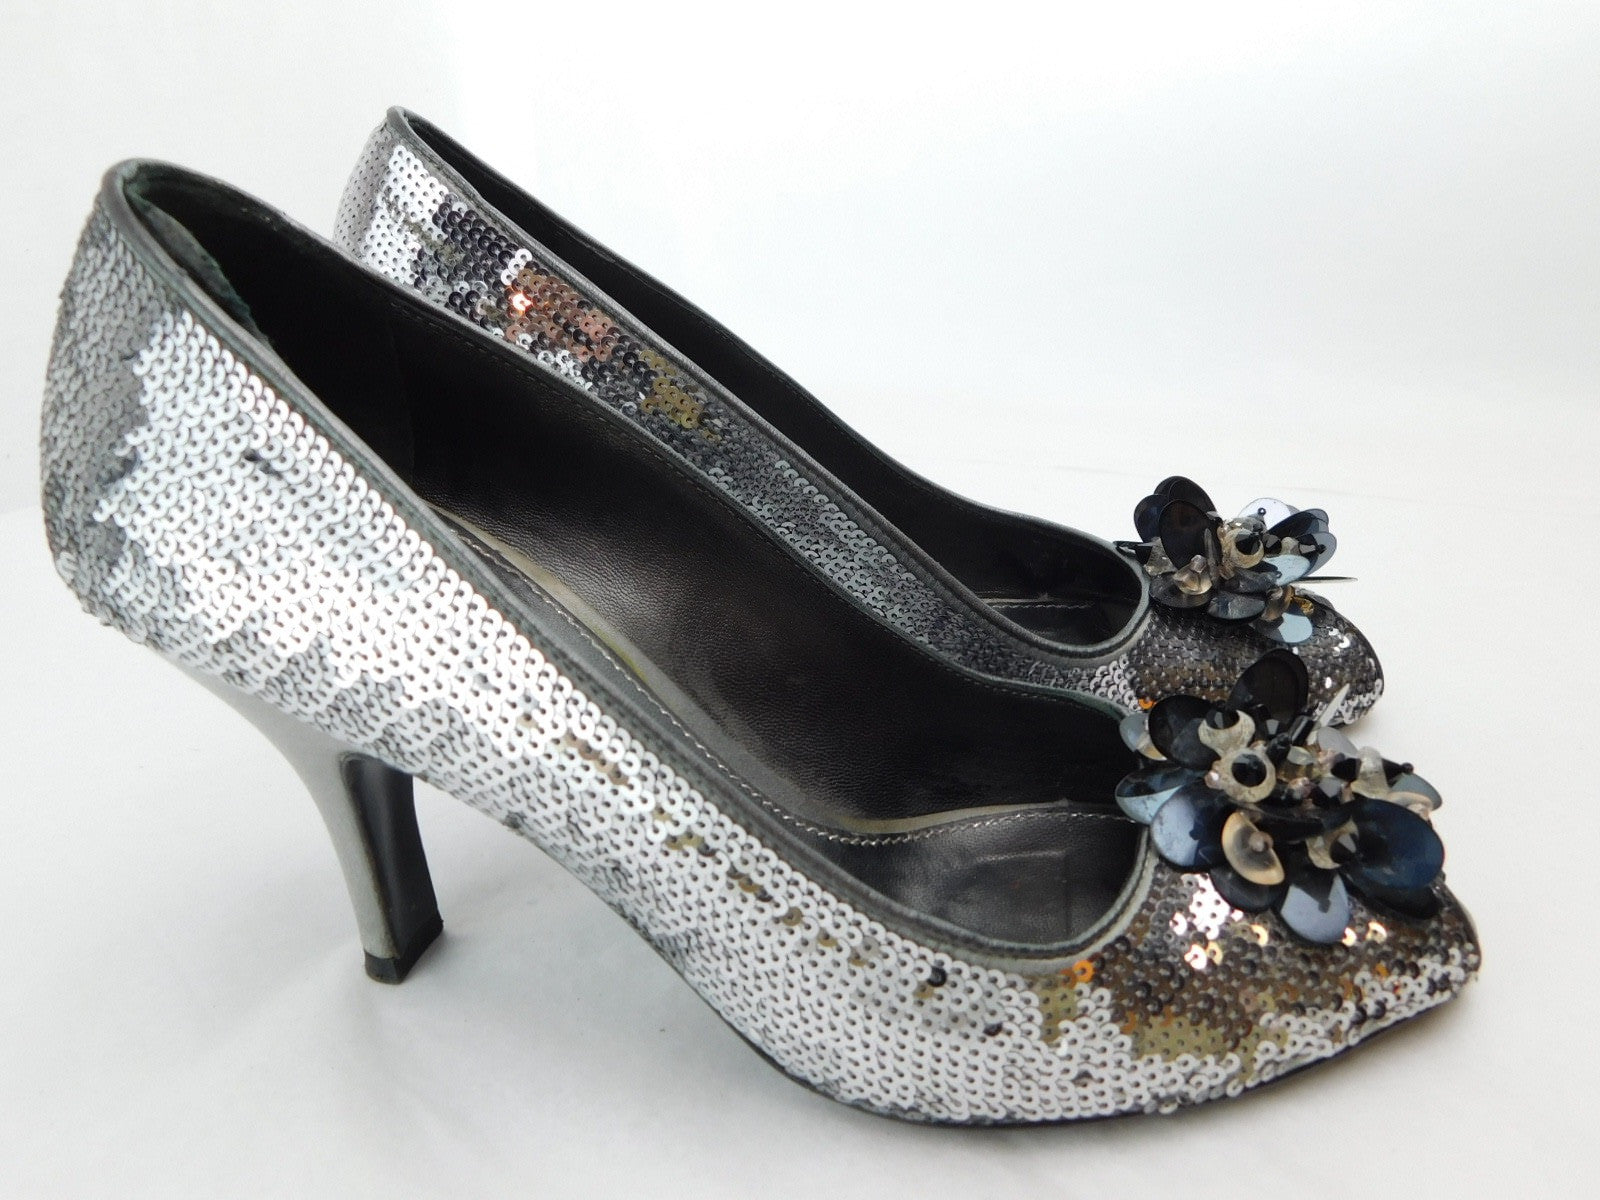 Prada Silver Sequin Peep Toe Pumps, Size 35.5/US 5.5